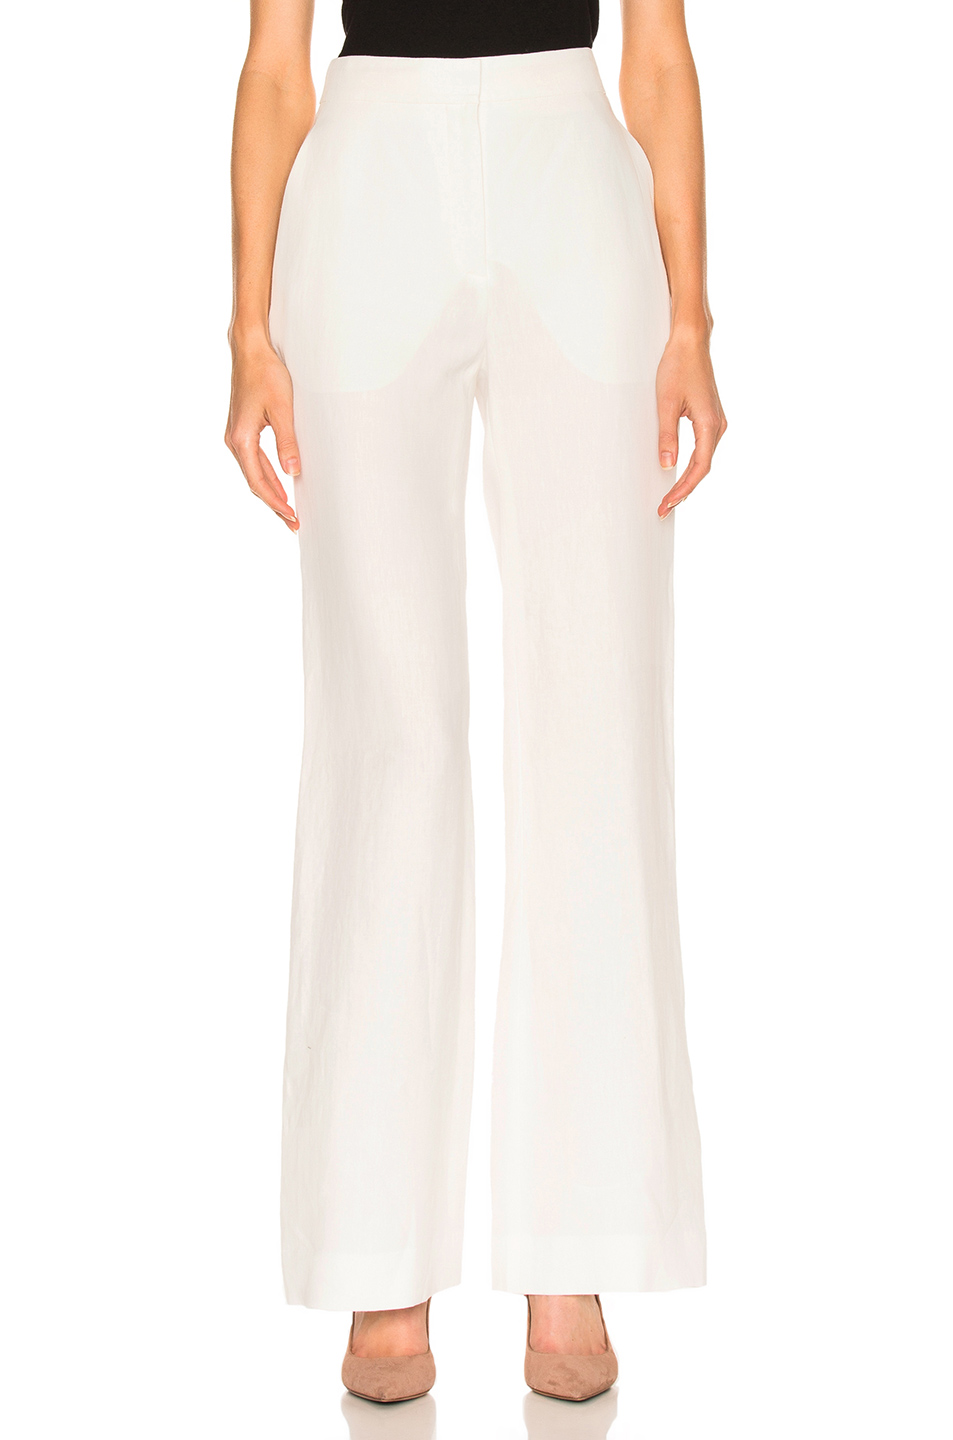 Brock Collection Pamela Pant in White